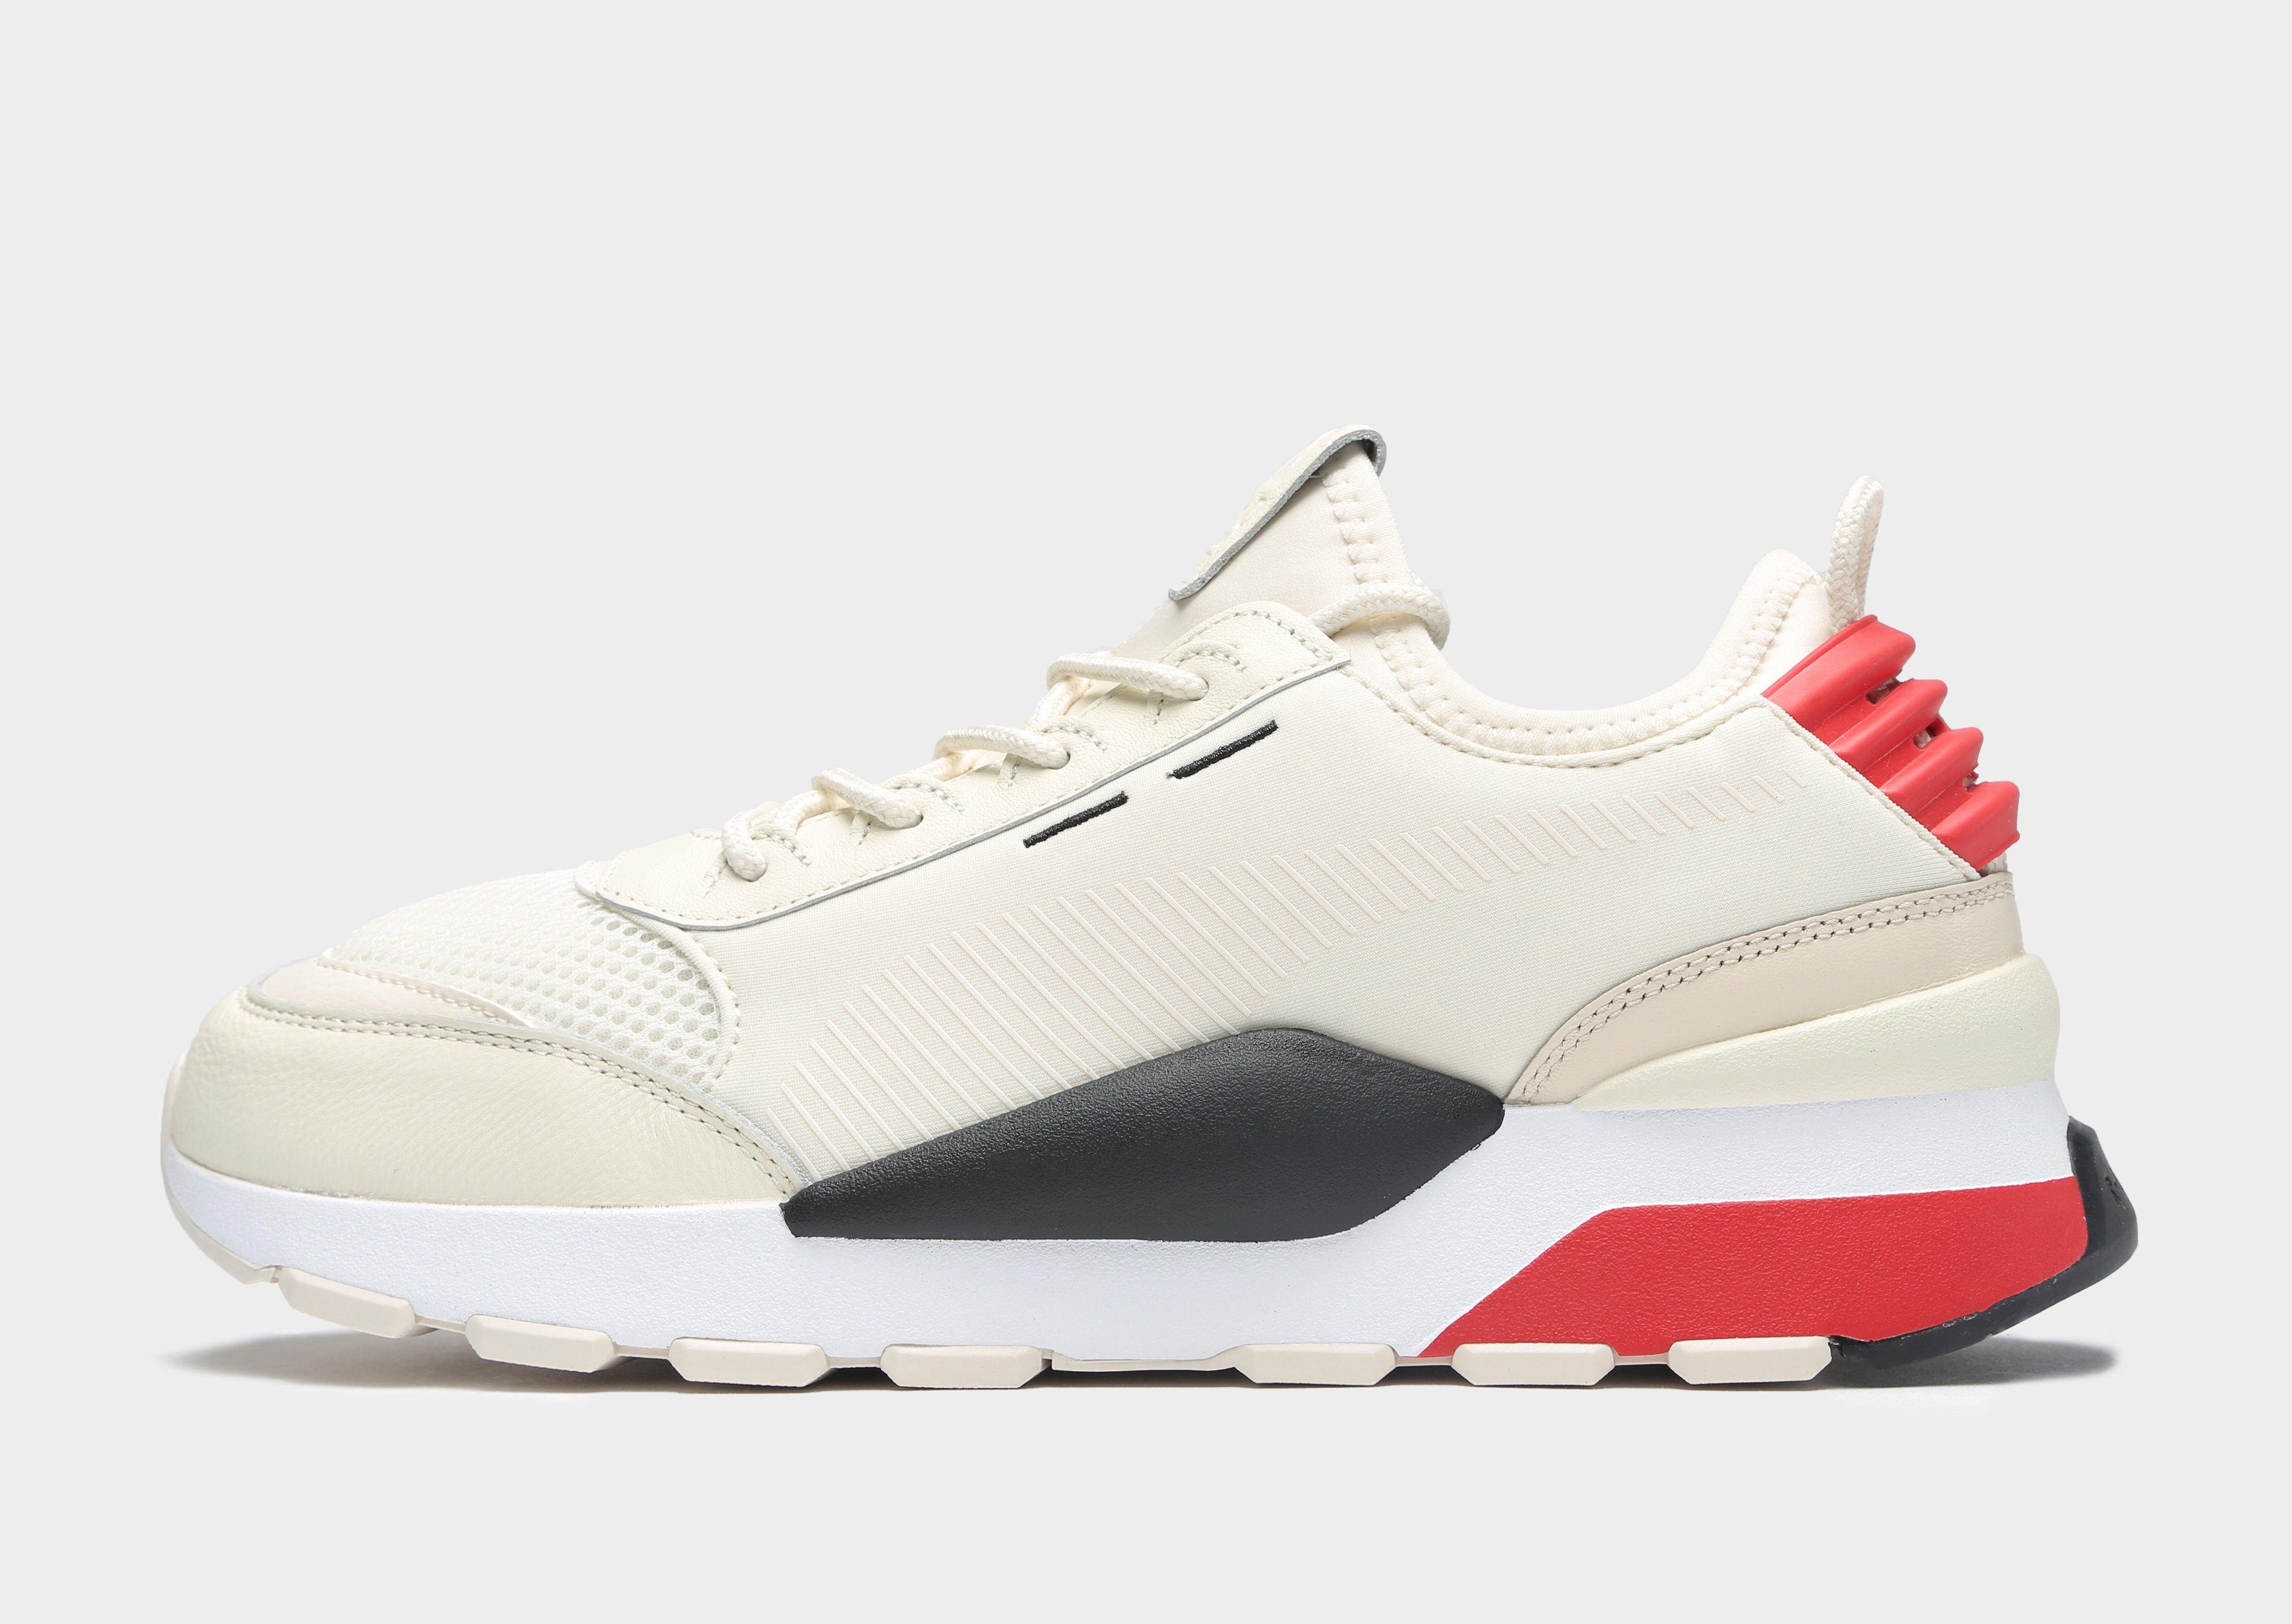 online store 5c4c0 3fe10 PUMA RS-0 Play   JD Sports Ireland